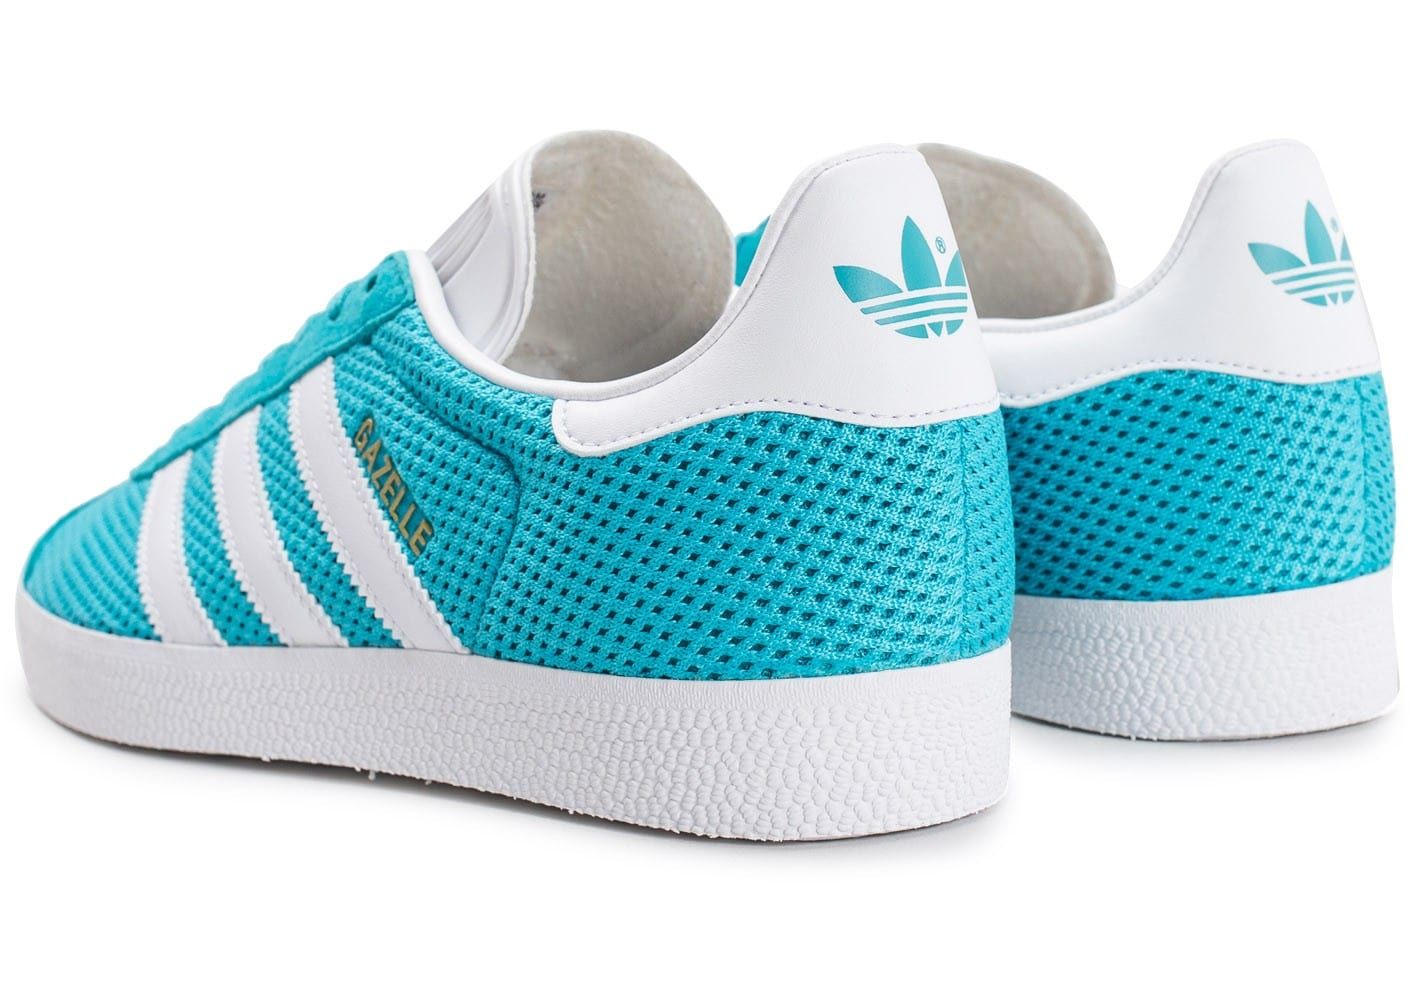 adidas Gazelle Mesh turquoise Chaussures Baskets homme